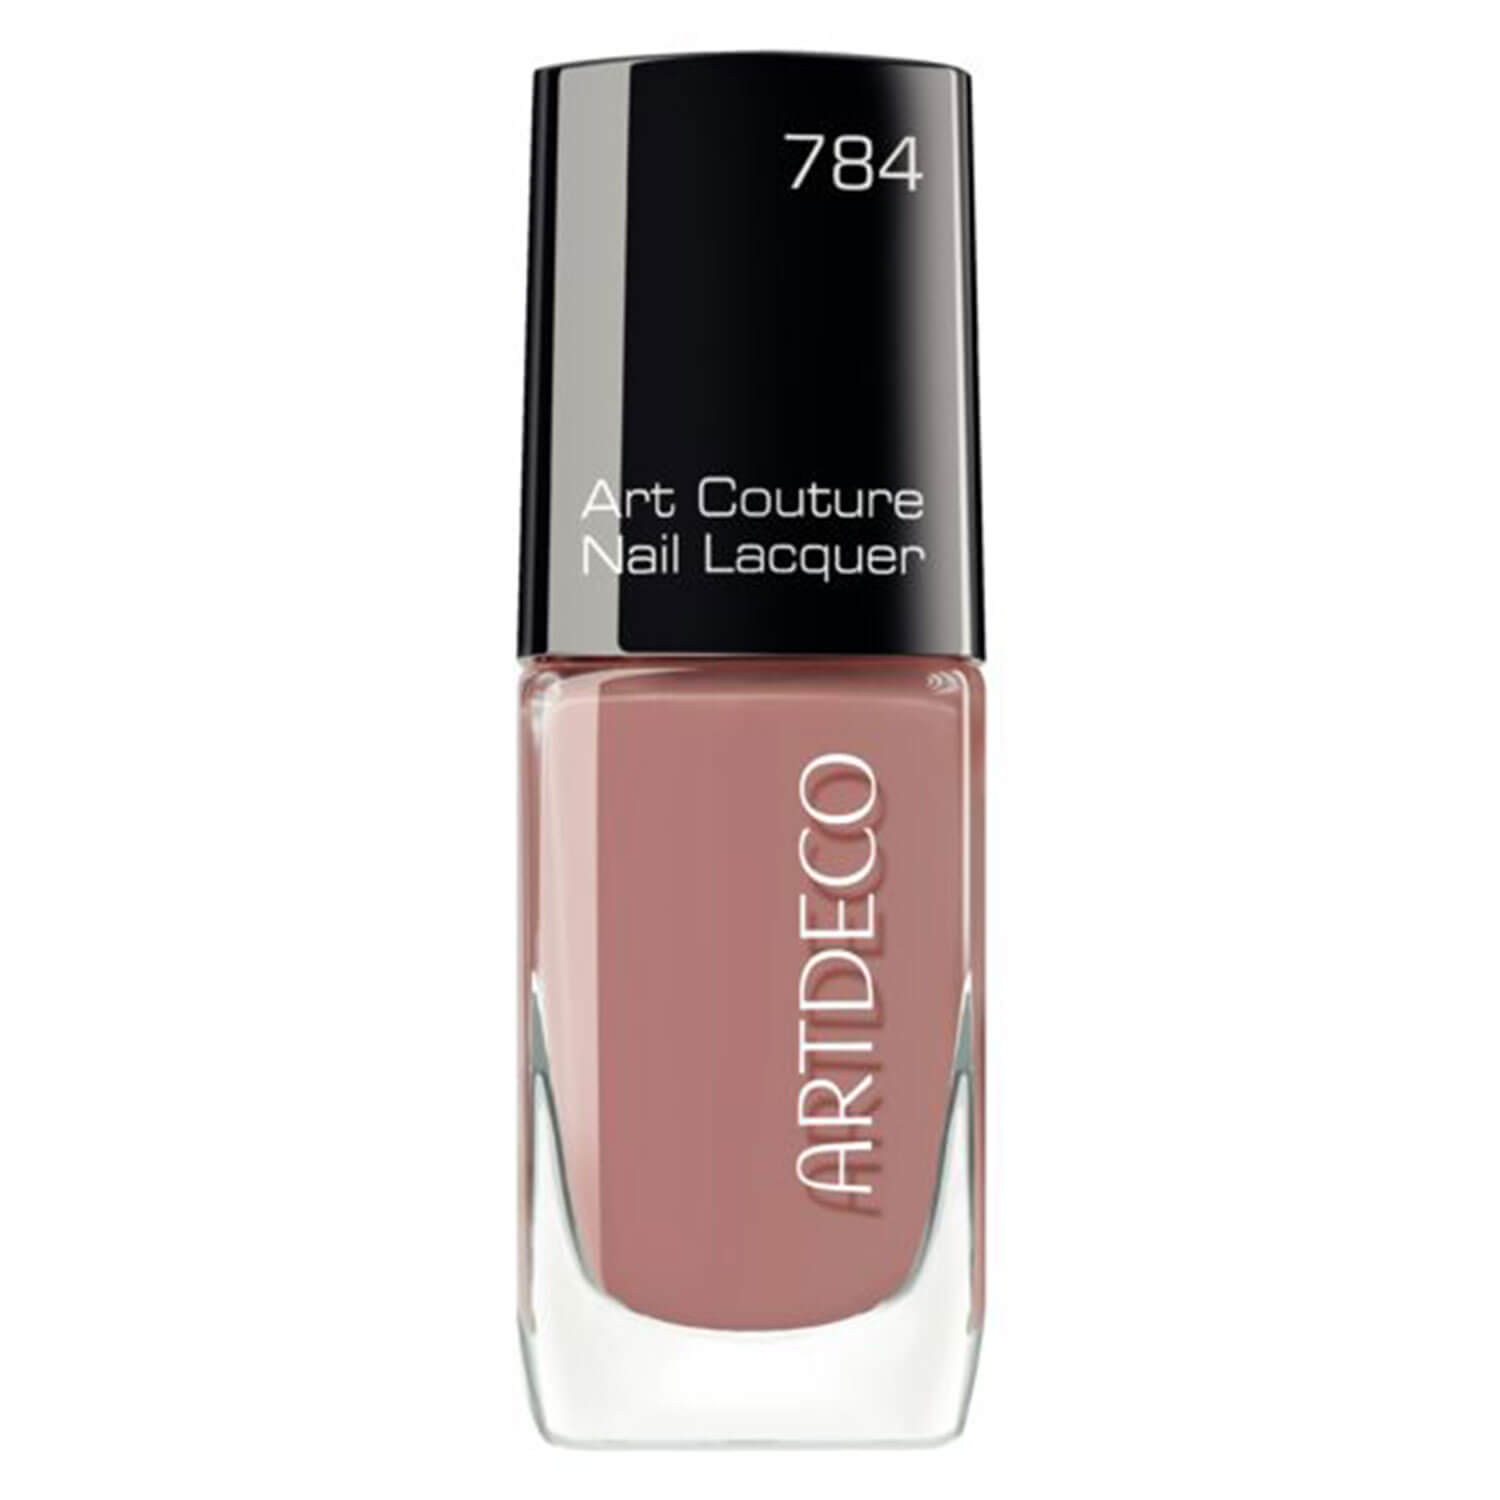 Art Couture - Nail Lacquer Classic Rose 784